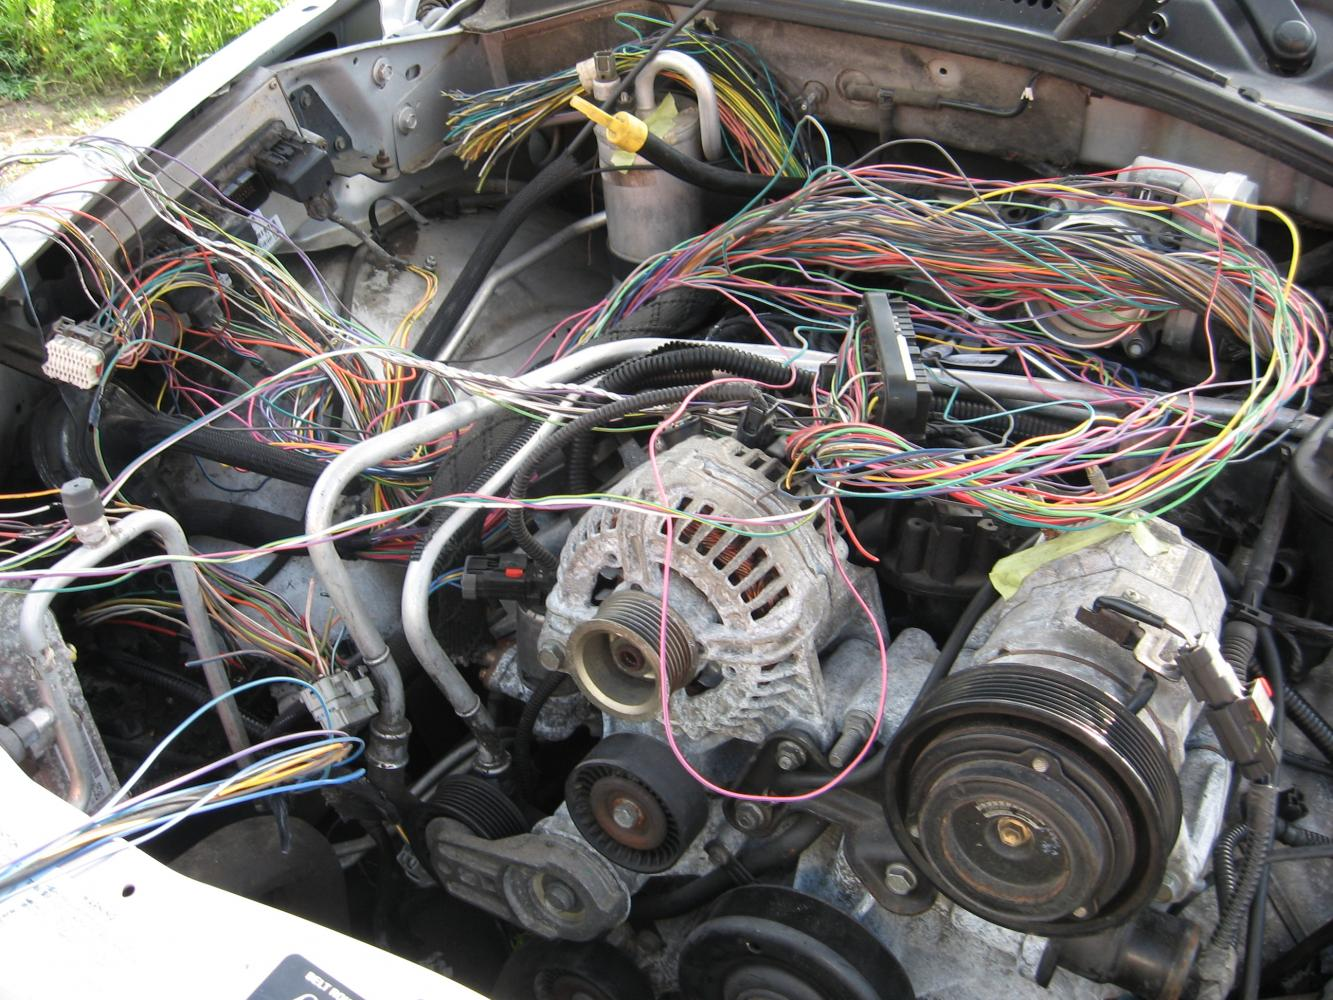 5288d1293817231 dakota hemi swap done heres how picture 012 dakota hemi swap done heres how page 3 dodge dakota forum hemi swap wiring harness at edmiracle.co